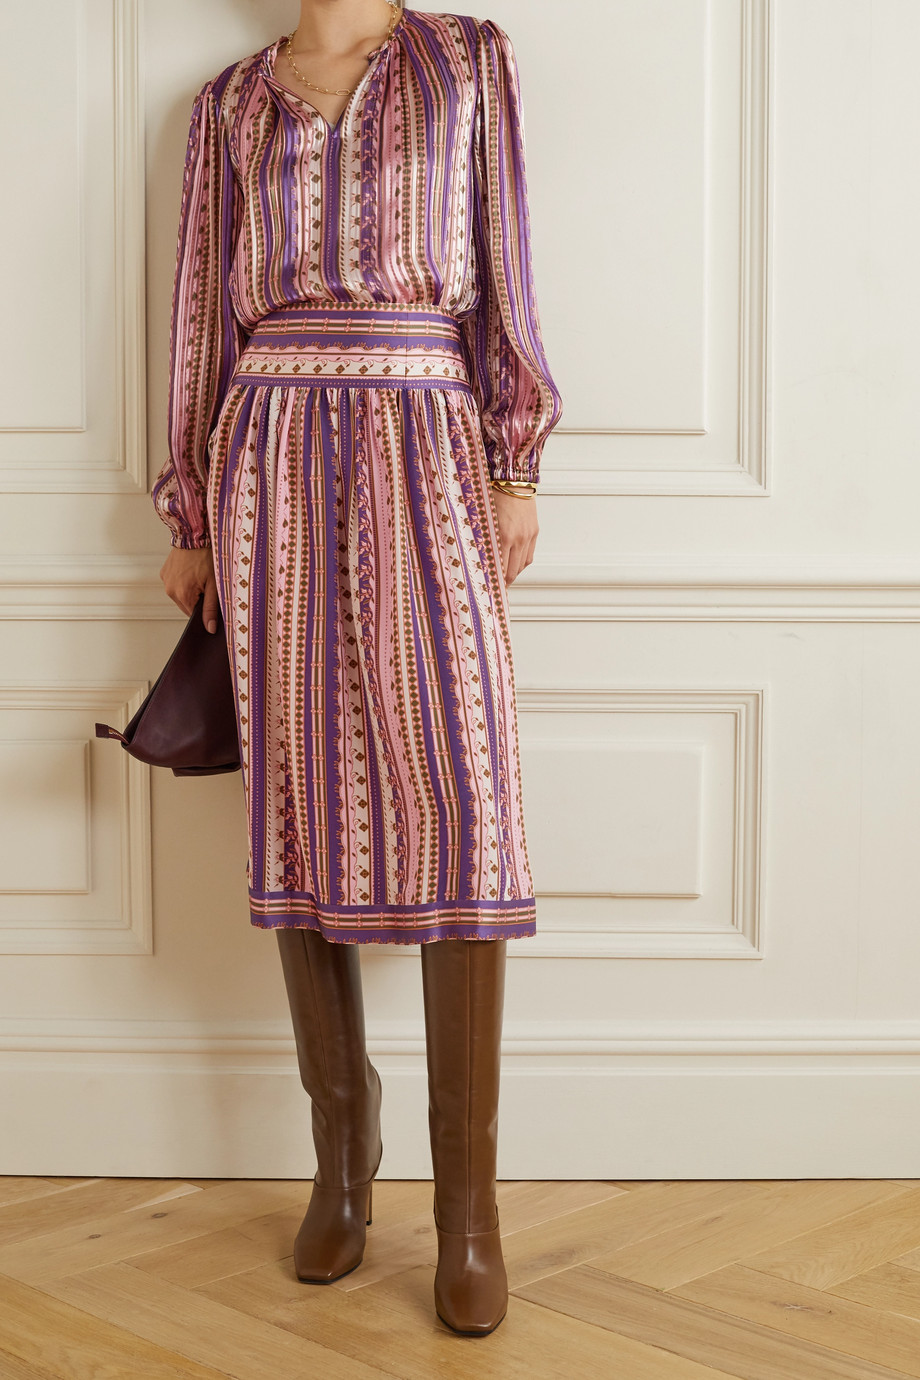 TORY BURCH Pleated printed satin blouse